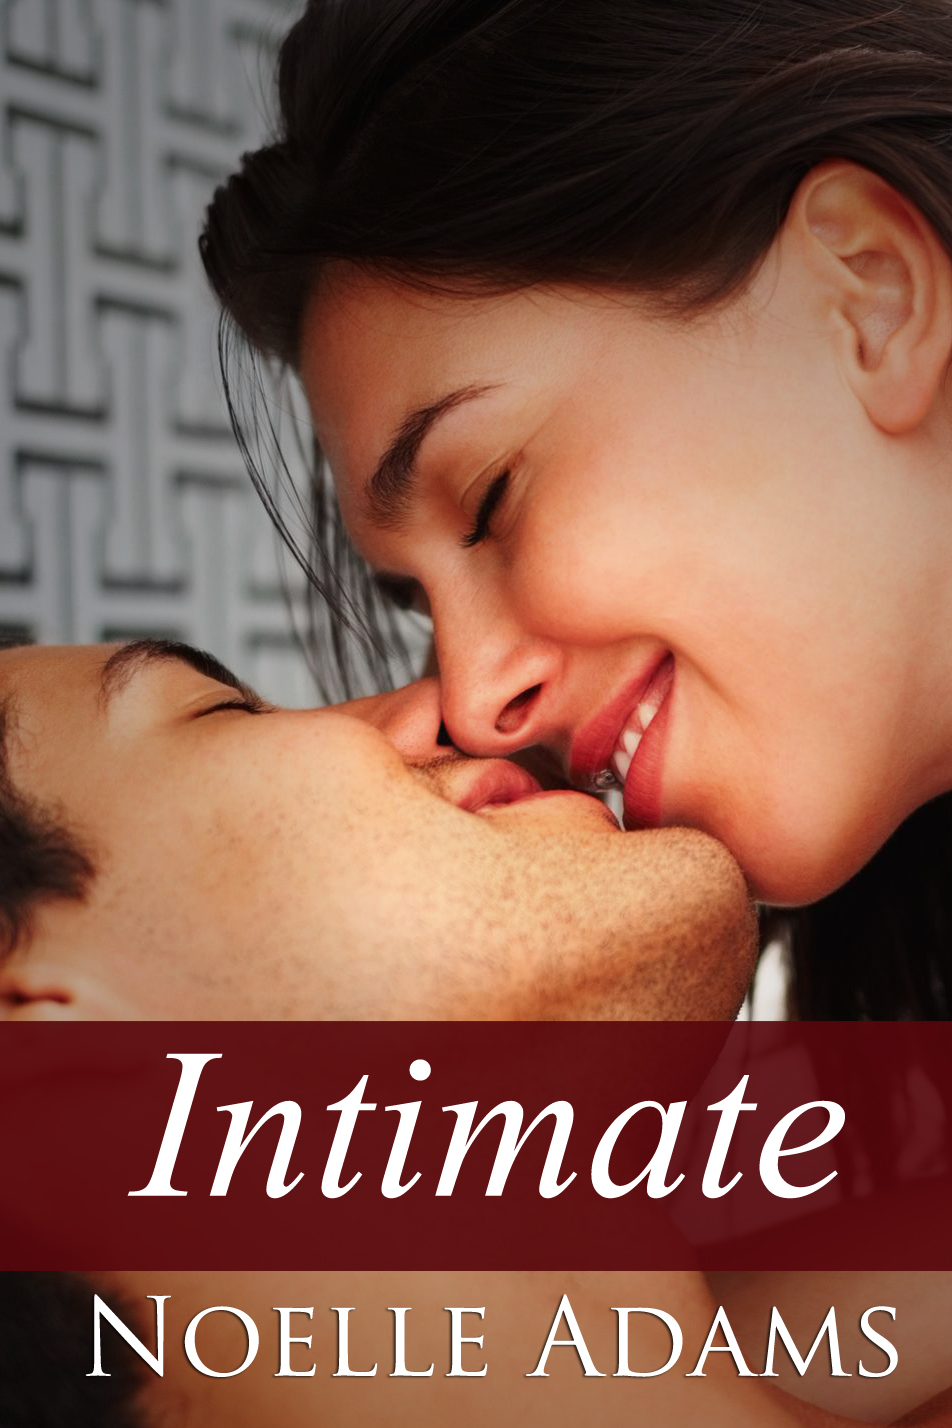 Release Event & Giveaway for Intimate by Noelle Adams